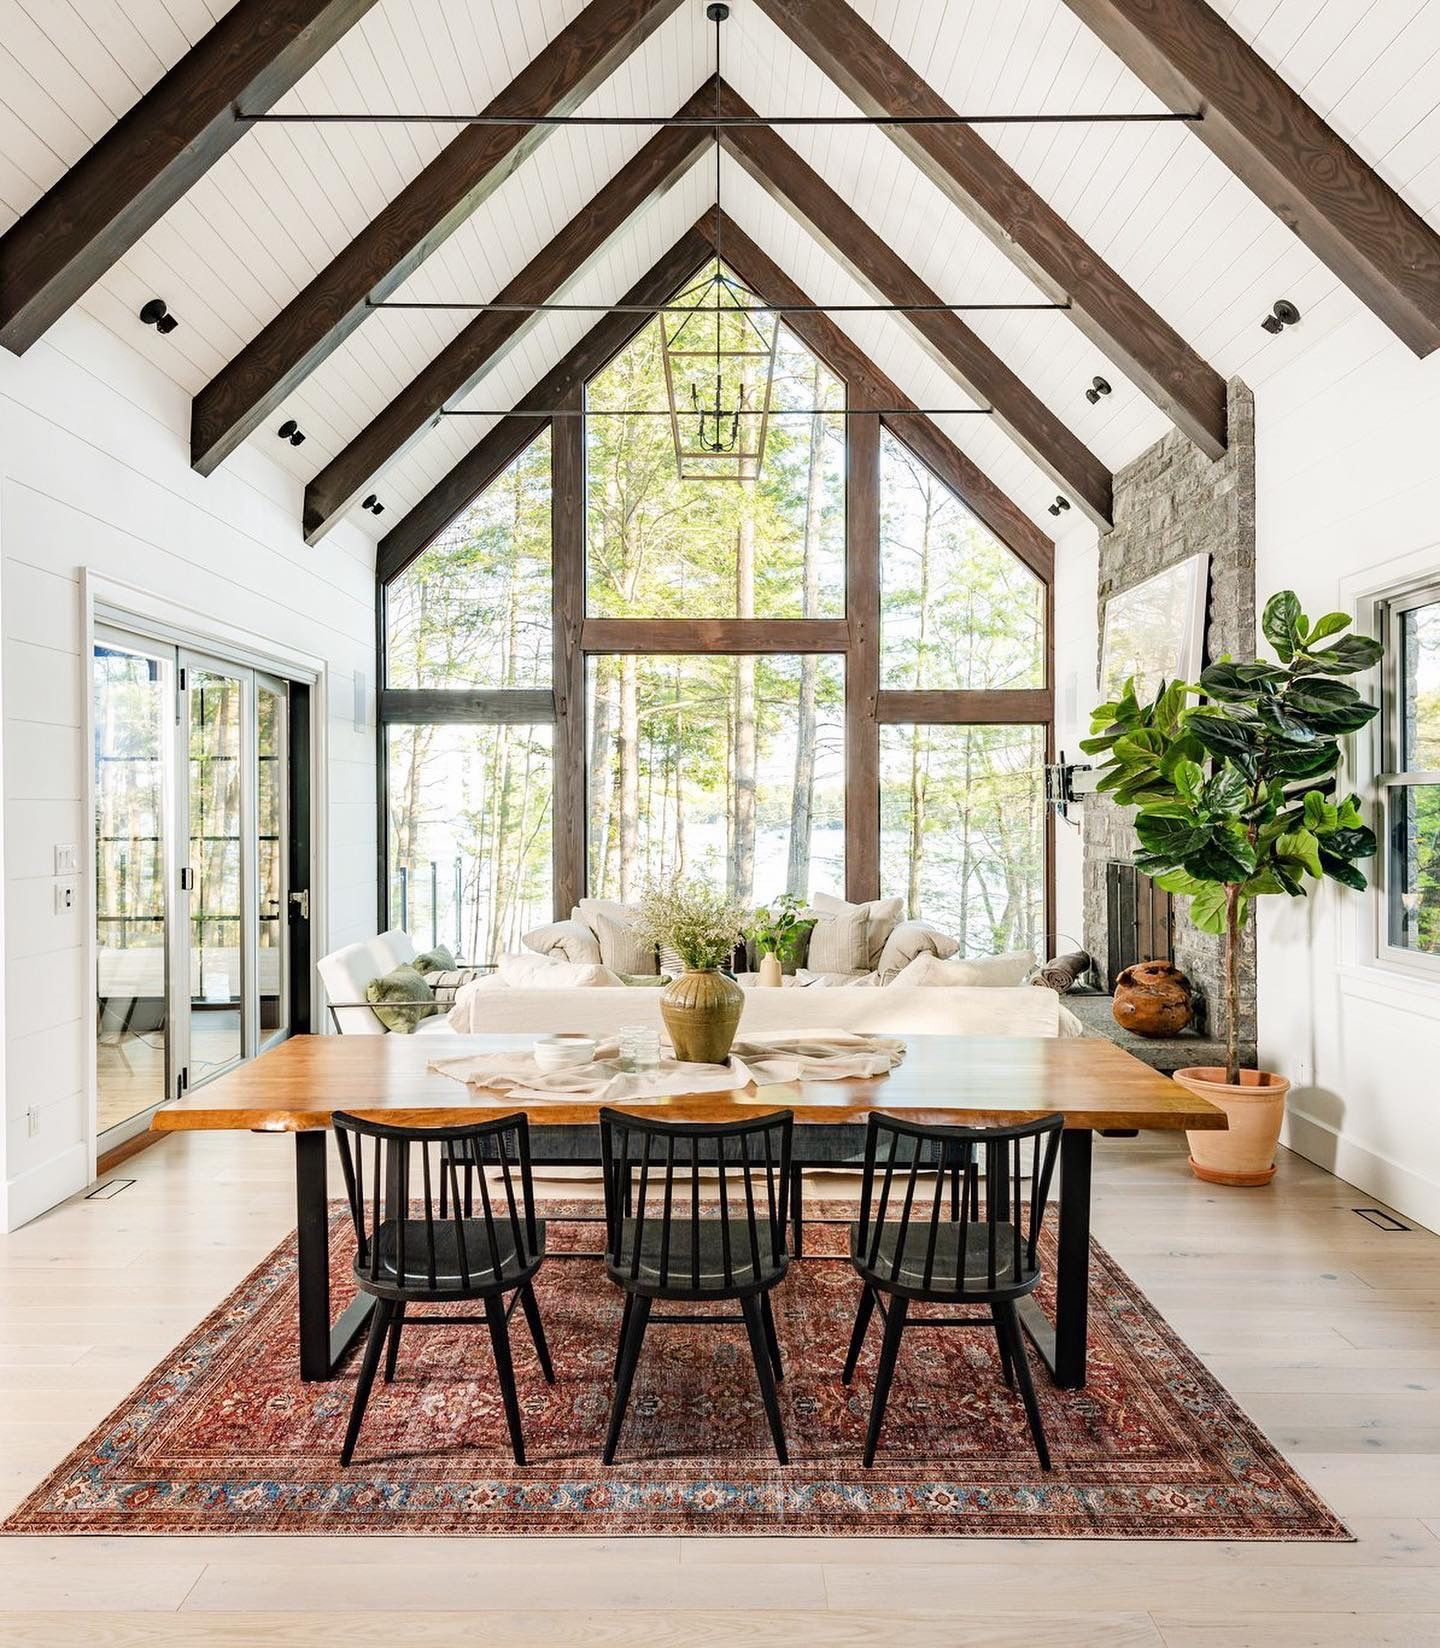 Pin By Lk Design Delray On Dining In 2020 Lake House Dining Room Lake House Dining Budget Home Decorating